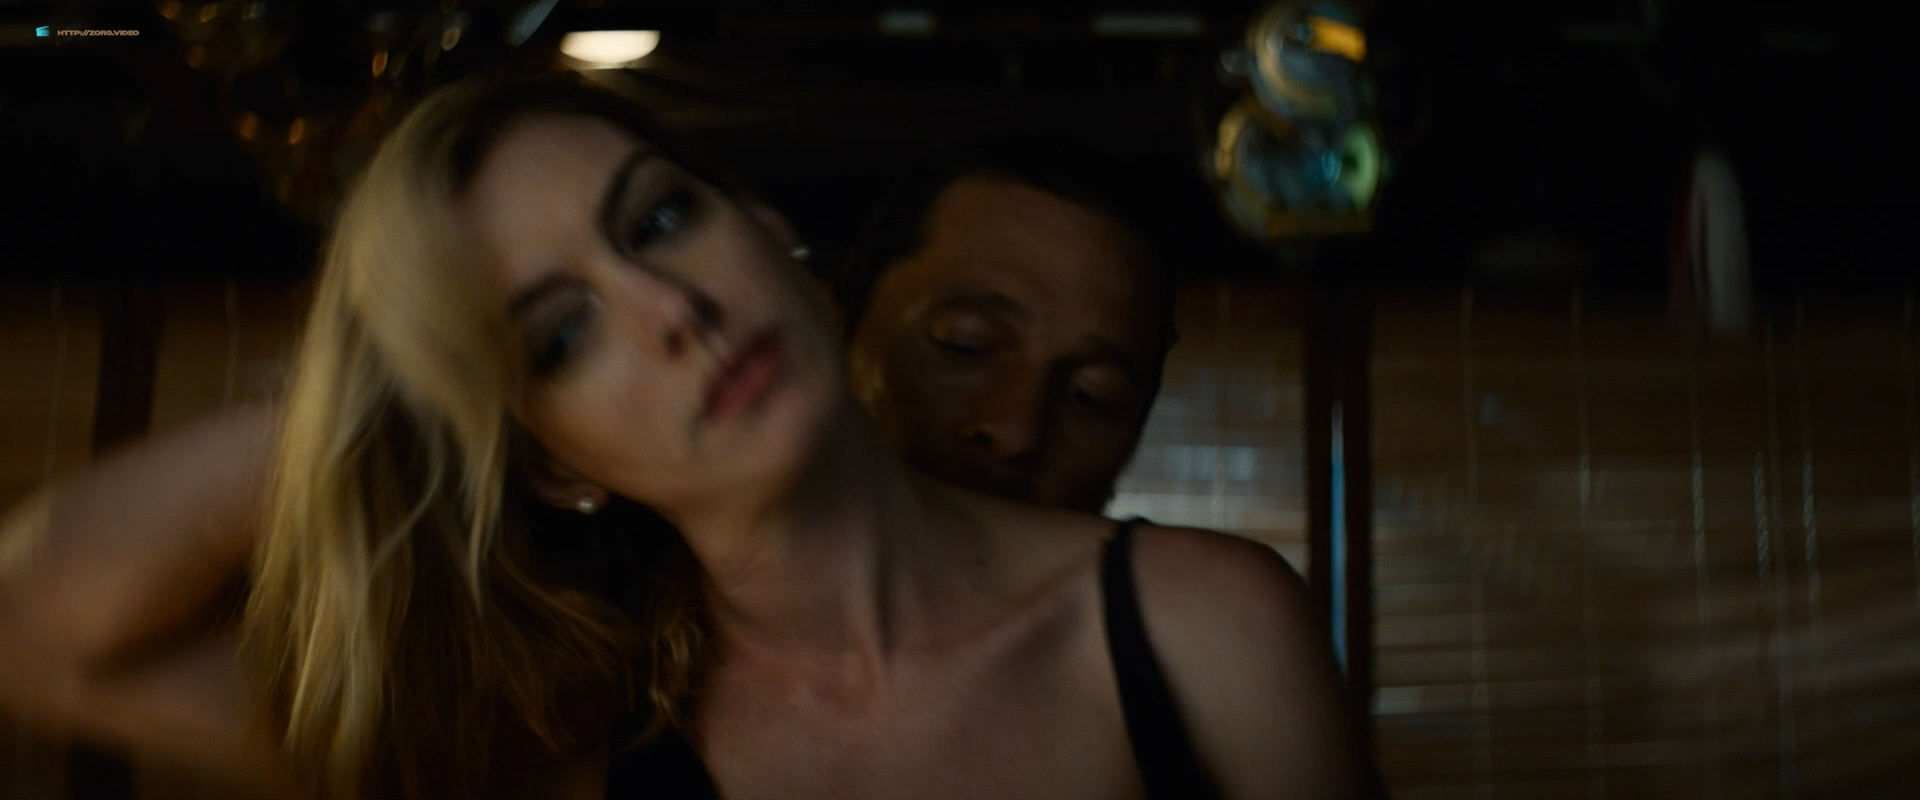 Anne Hathaway hot in sex scene - Serenity (2019) HD 1080p BluRay (11)